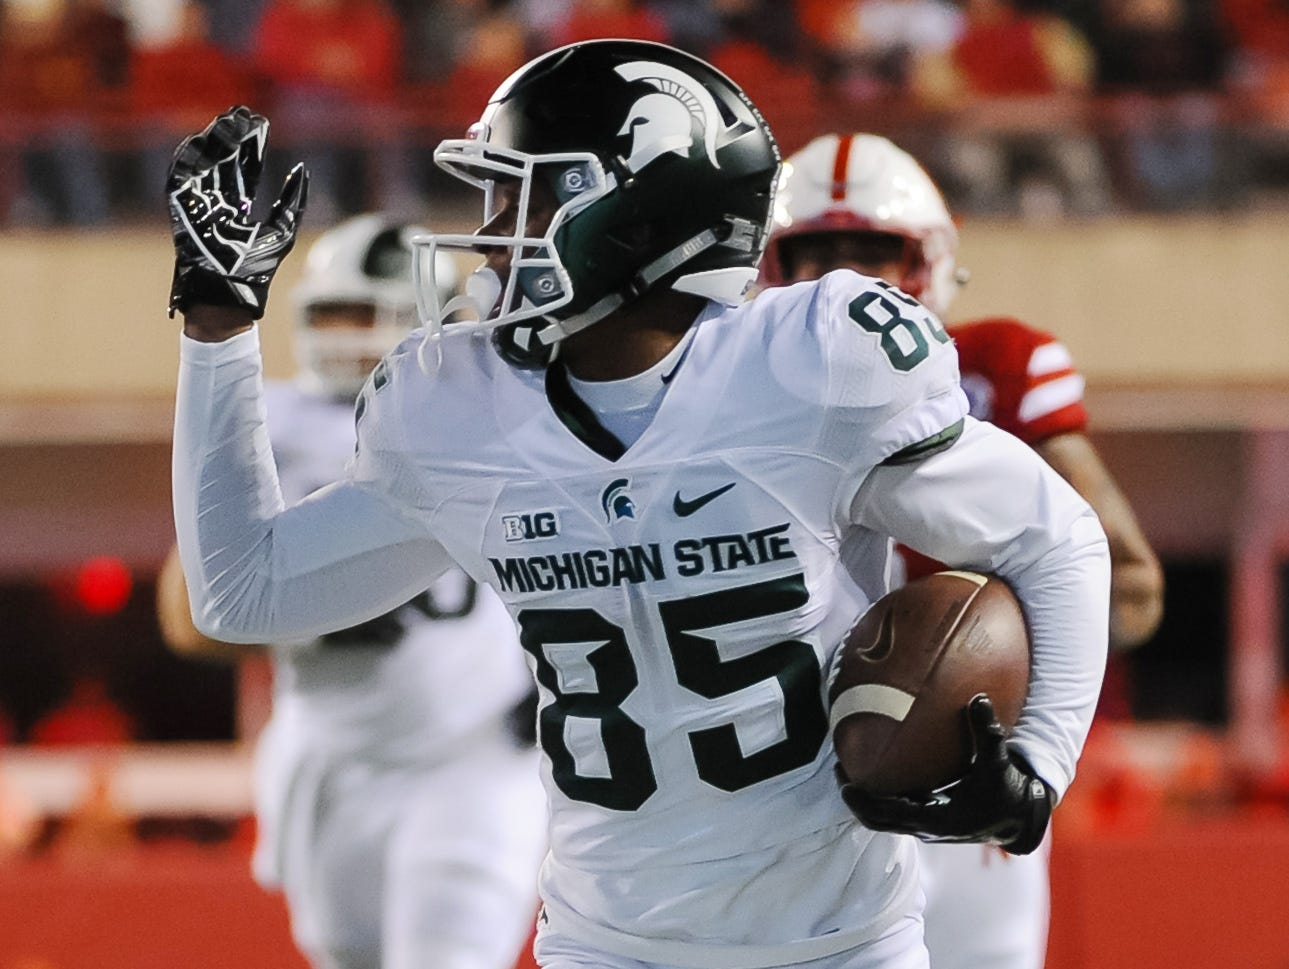 Nov 7, 2015; Lincoln, NE, USA; Michigan State Spartans wide receiver Macgarrett Kings Jr. (85) carries the ball to score a touchdown against the Nebraska Cornhuskers at Memorial Stadium.